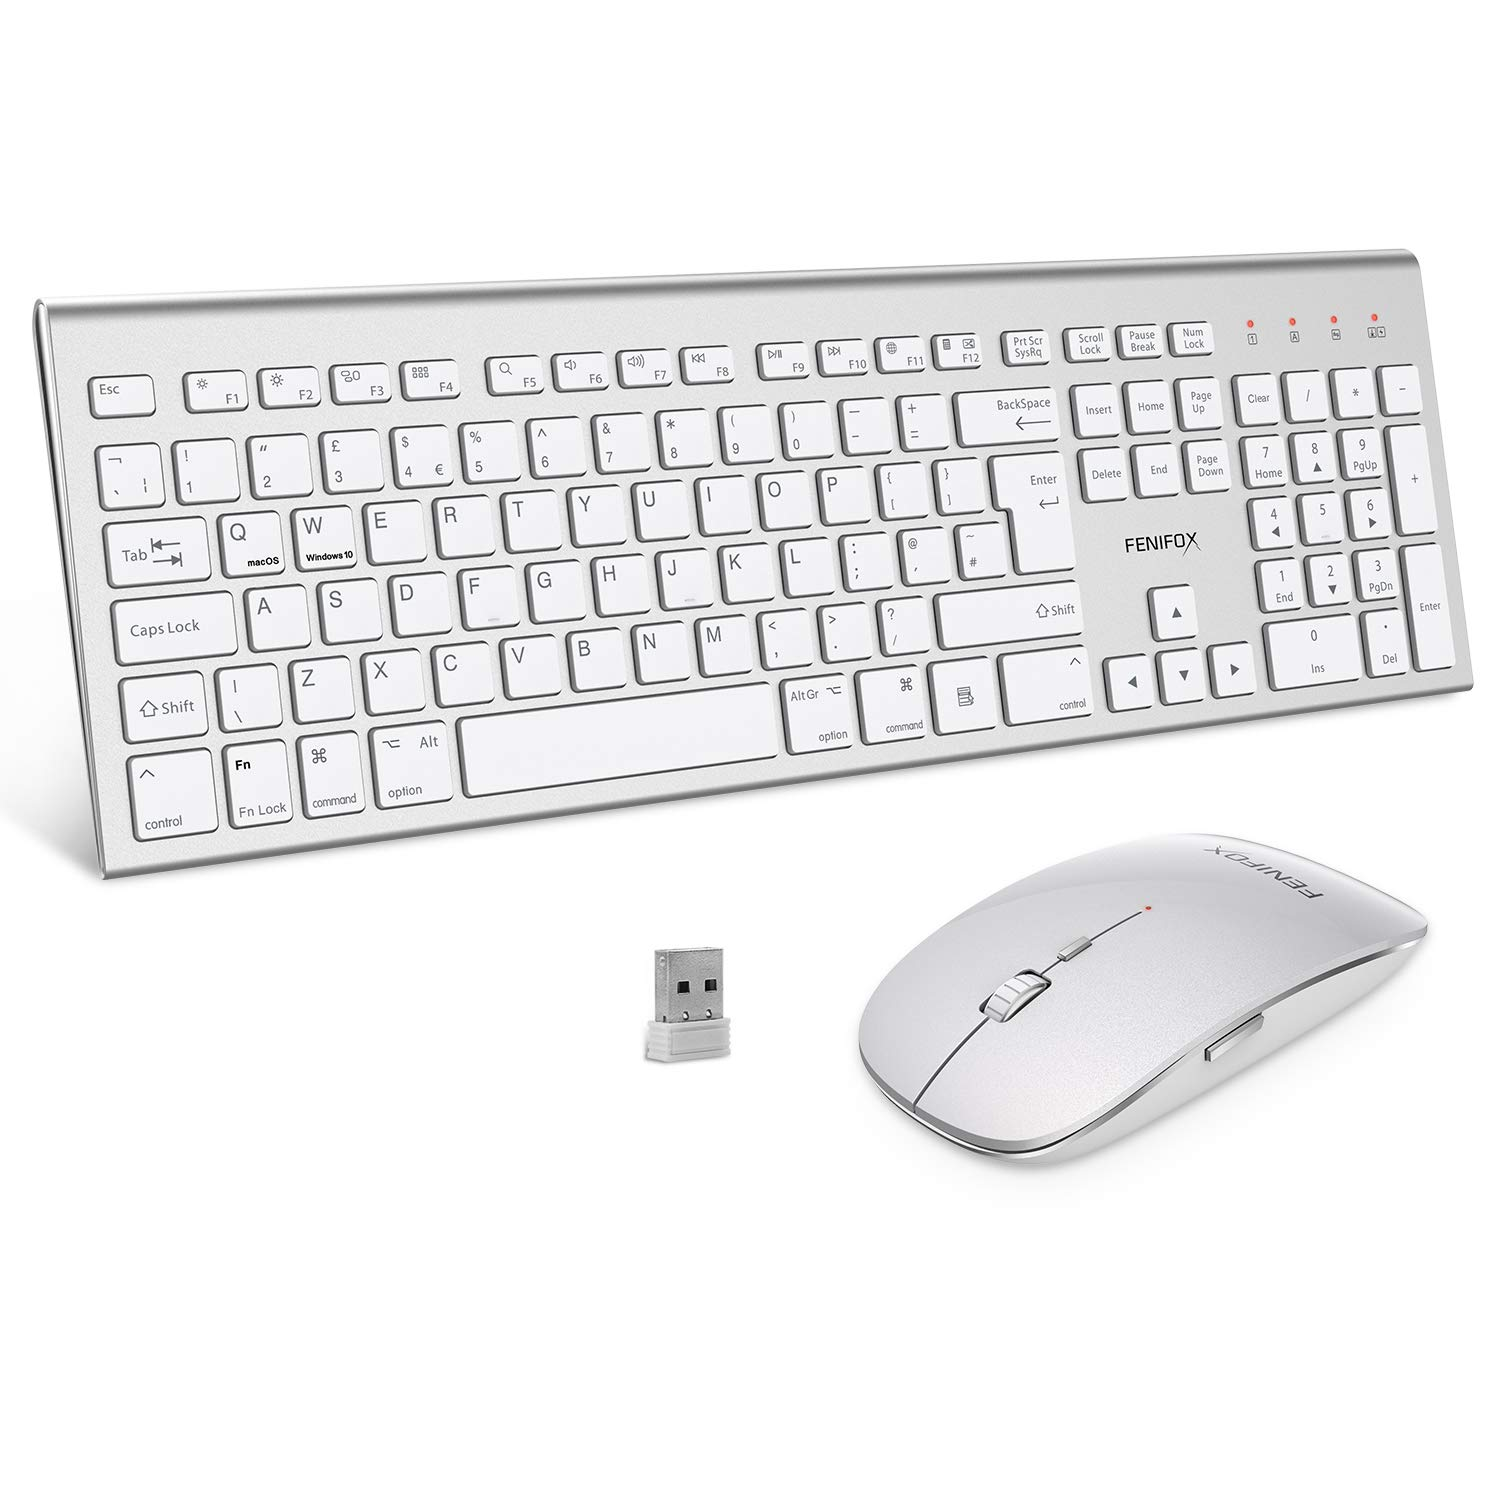 FENIFOX Wireless Keyboard & Mouse, Dual System Switching Double Ergonomic 2.4G USB QWERTY Full Size UK Layout for Computer PC Mac imac Laptop Windows 10 8 7 Xp